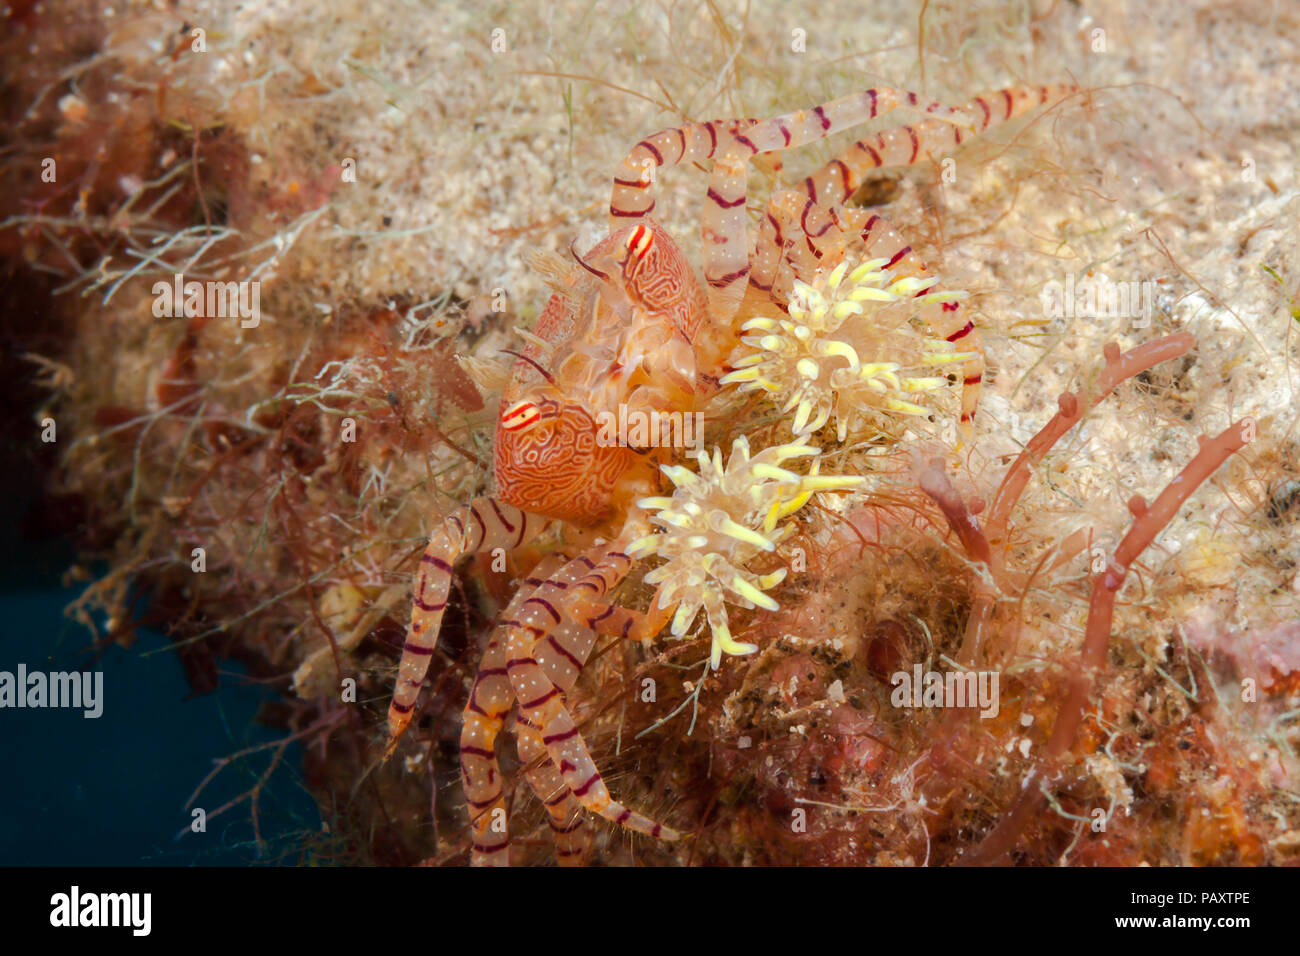 The endemic Hawaiian pom-pom crab or boxer crab, Lybia edmondsoni, is associated with anemones, Triactis sp, that it carries around holding with the c - Stock Image